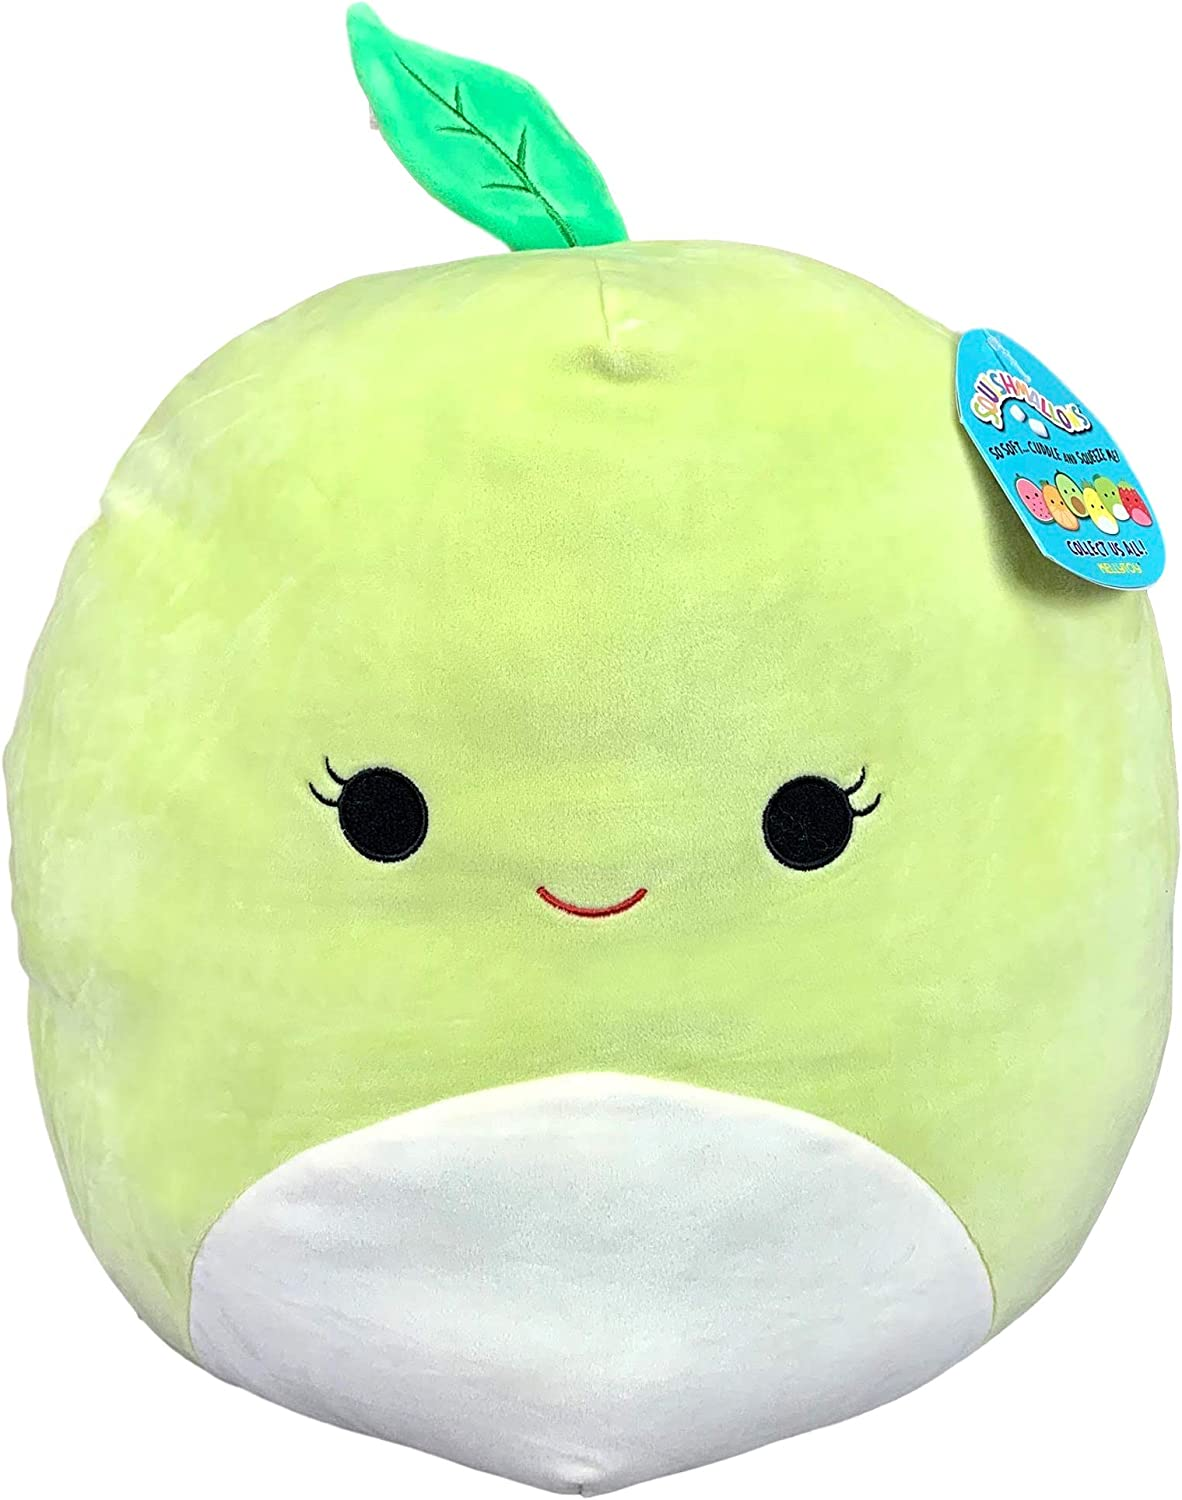 Squishmallow 16in, Ashley The Apple,Stuffed Animal, Super Pillow Soft Plush Toy, Green